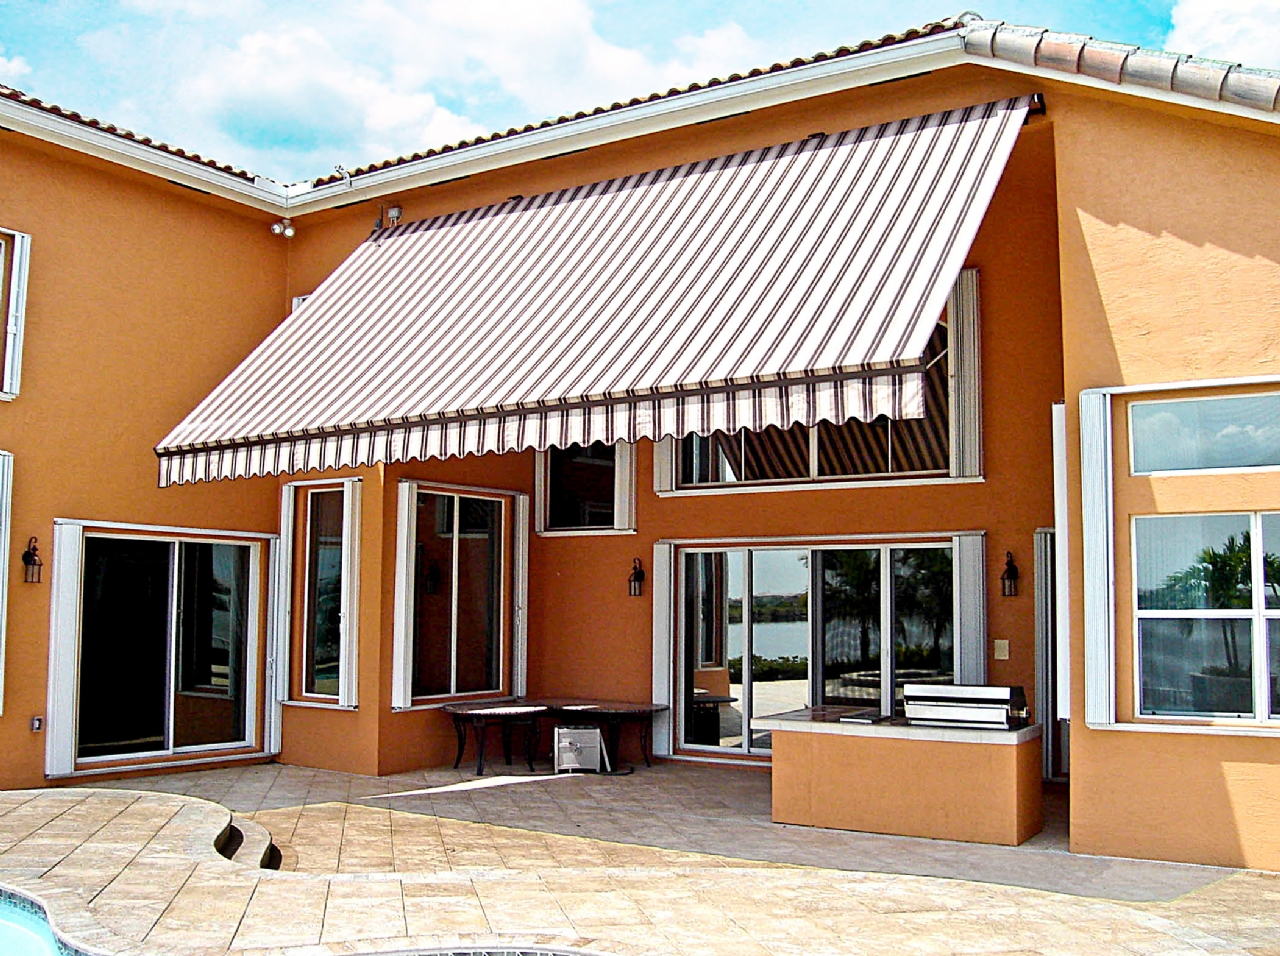 Retractable Canopies Product : Retractable awnings